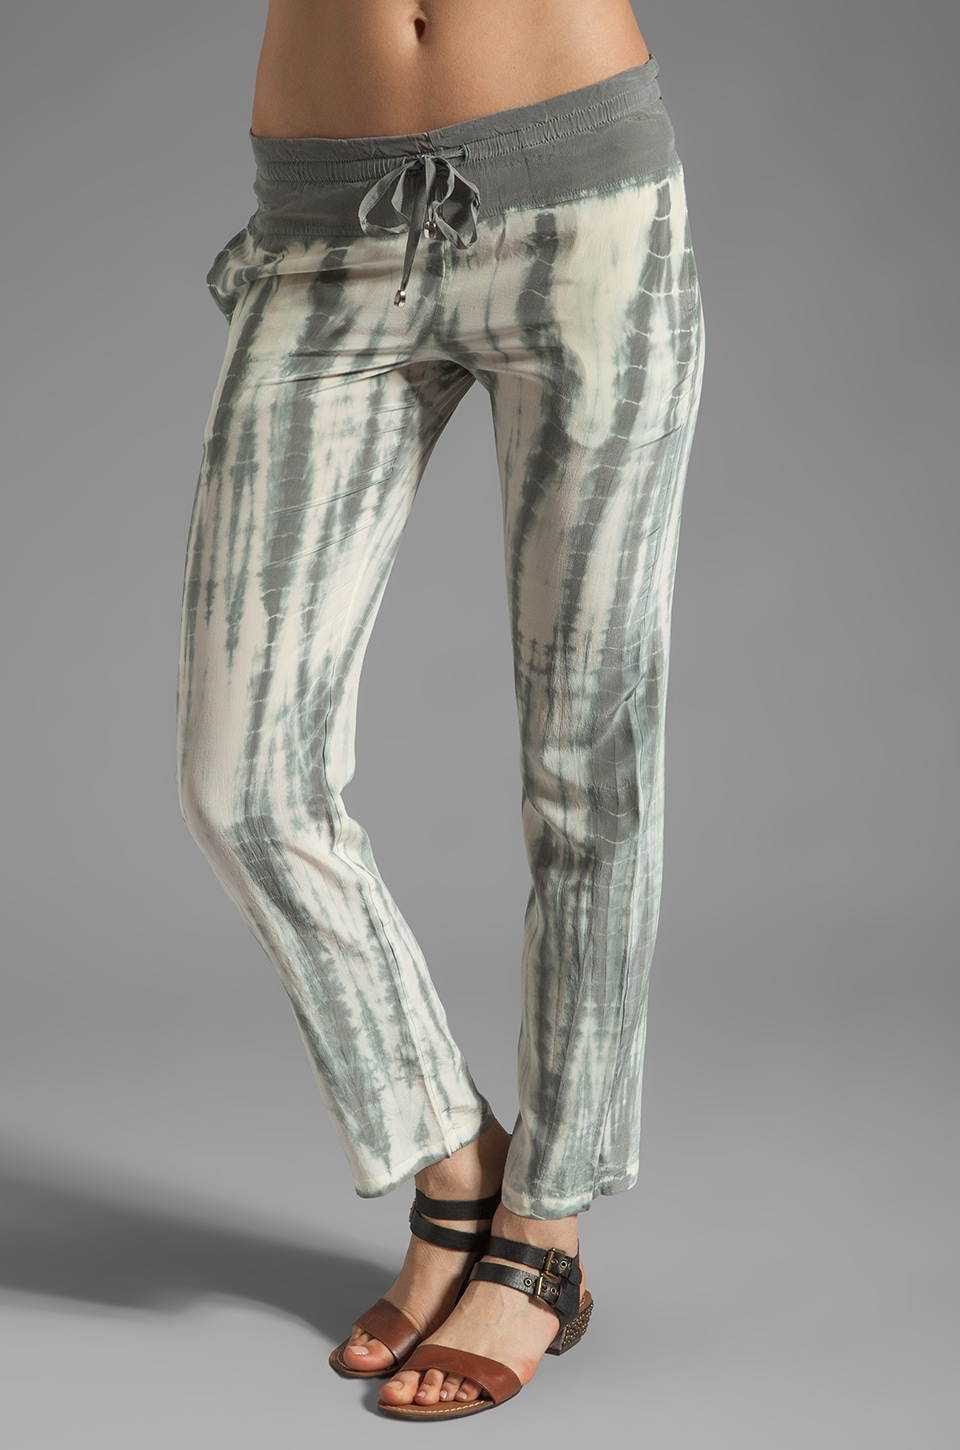 Gypsy 05 Sarah Silk Pant in Grey Alligator